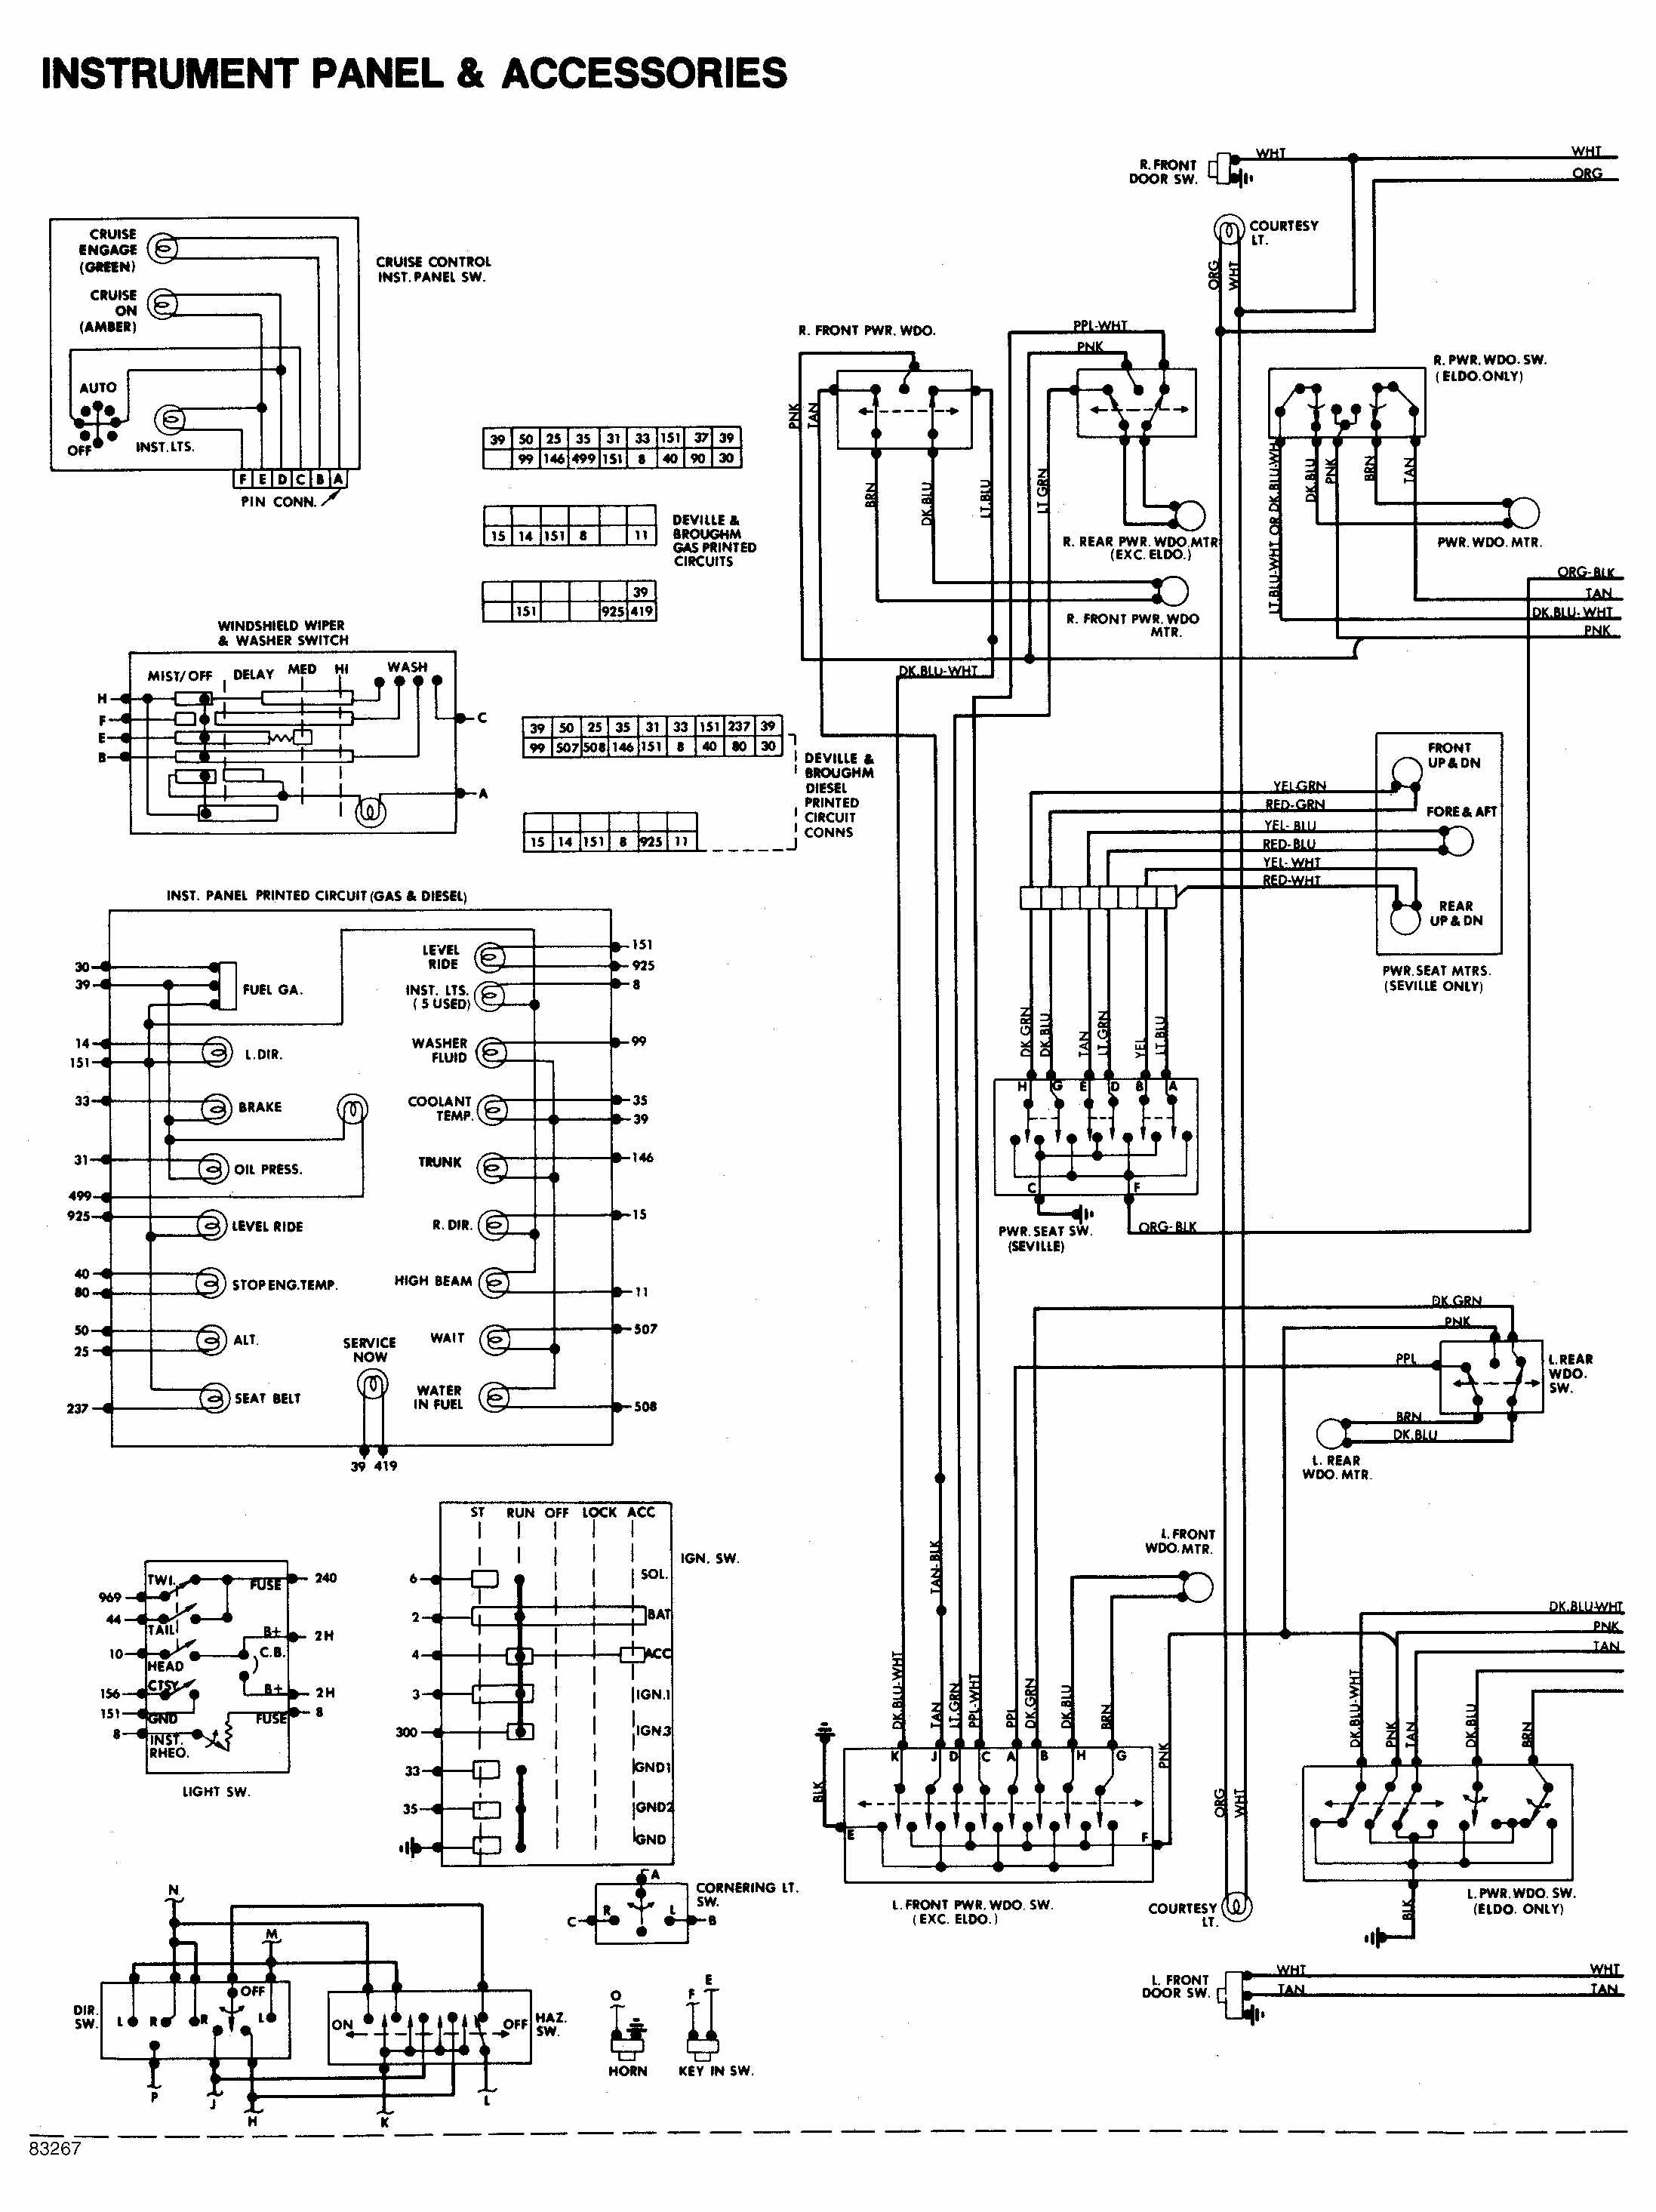 instrument panel and accessories wiring diagram of 1984 cadillac deville gm wiring diagrams wiring diagram radio fm \u2022 wiring diagrams j 2013 Cadillac CTS Fuse Box Location at gsmx.co